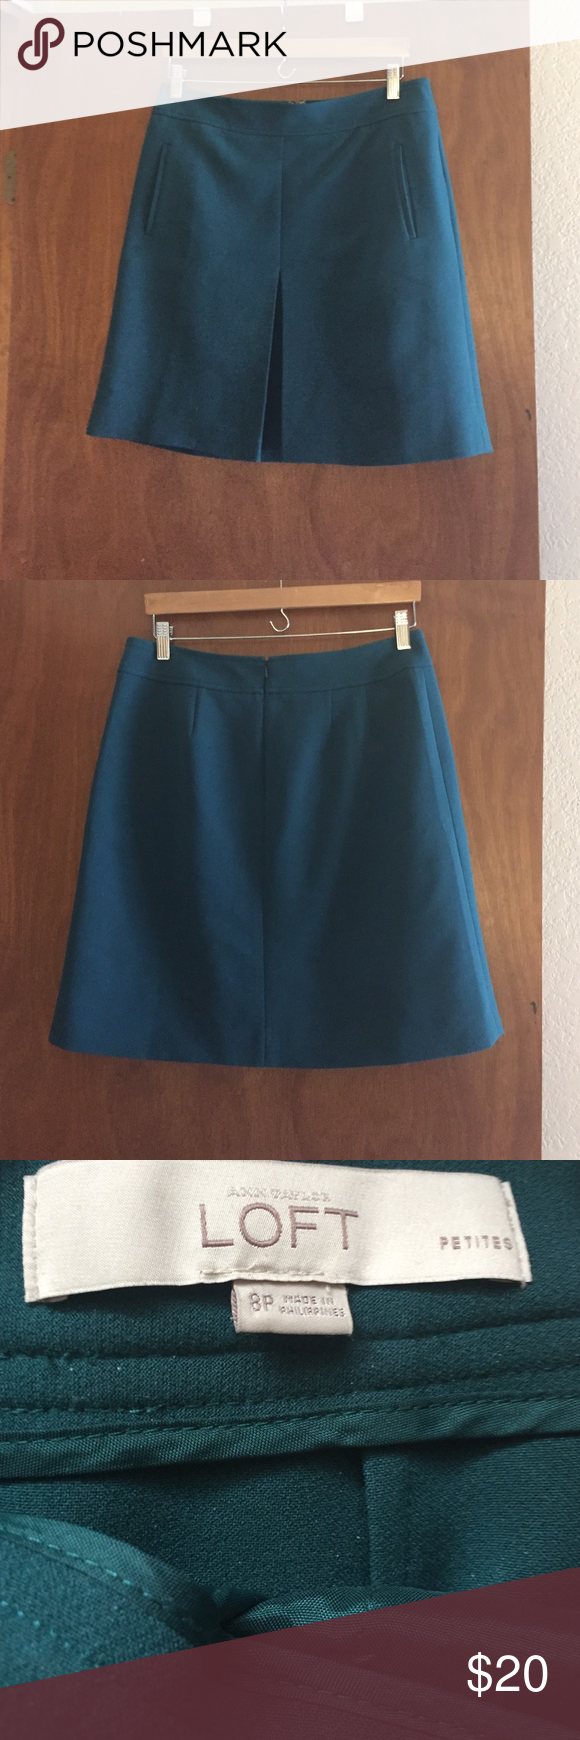 Loft teal Aline skirt 8petite This is gorgeous deep teal Aline skirt from Loft.  It zips up the back and has pockets!  It is an 8 petite.  This skirt looks good in the spring/summer with sandals and in the fall winter with tights. LOFT Skirts A-Line or Full